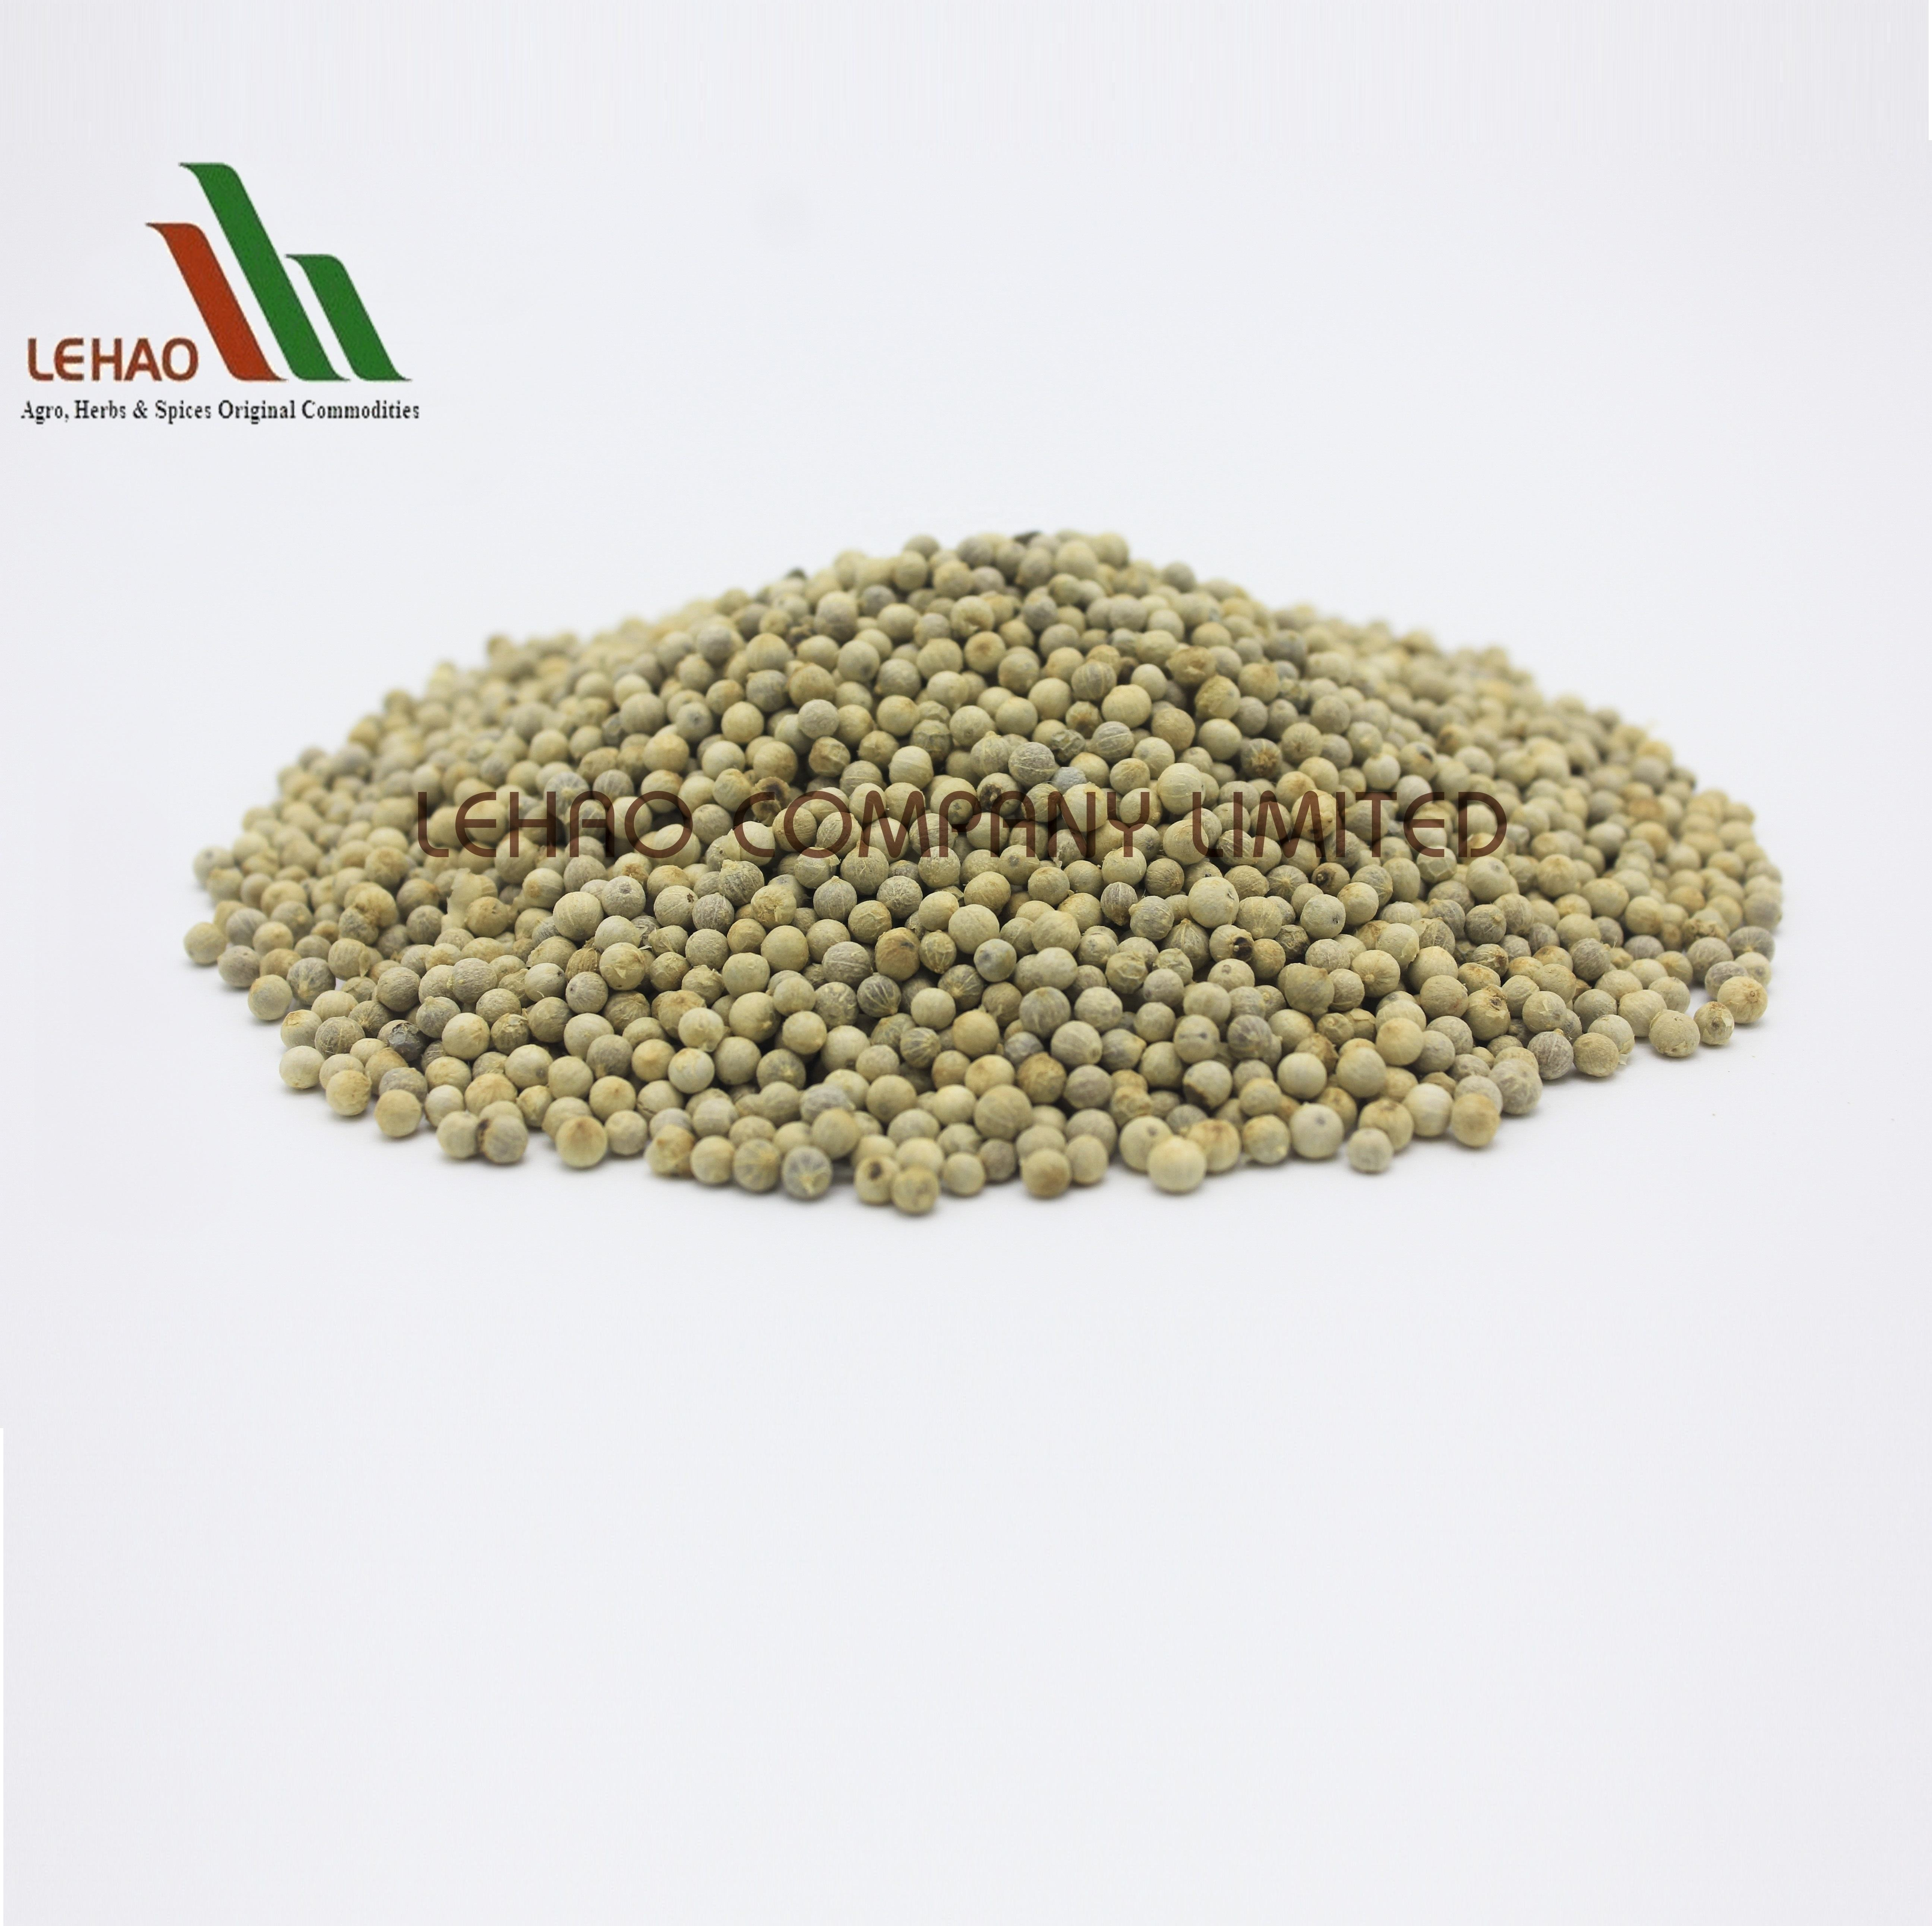 ONE OF THE HEALTHIEST SPICES IS WHITE PEPPER (MR. TUYEN - WHATSAPP/VIBER/KAKAOTALK/WECHAT 0084916275888)